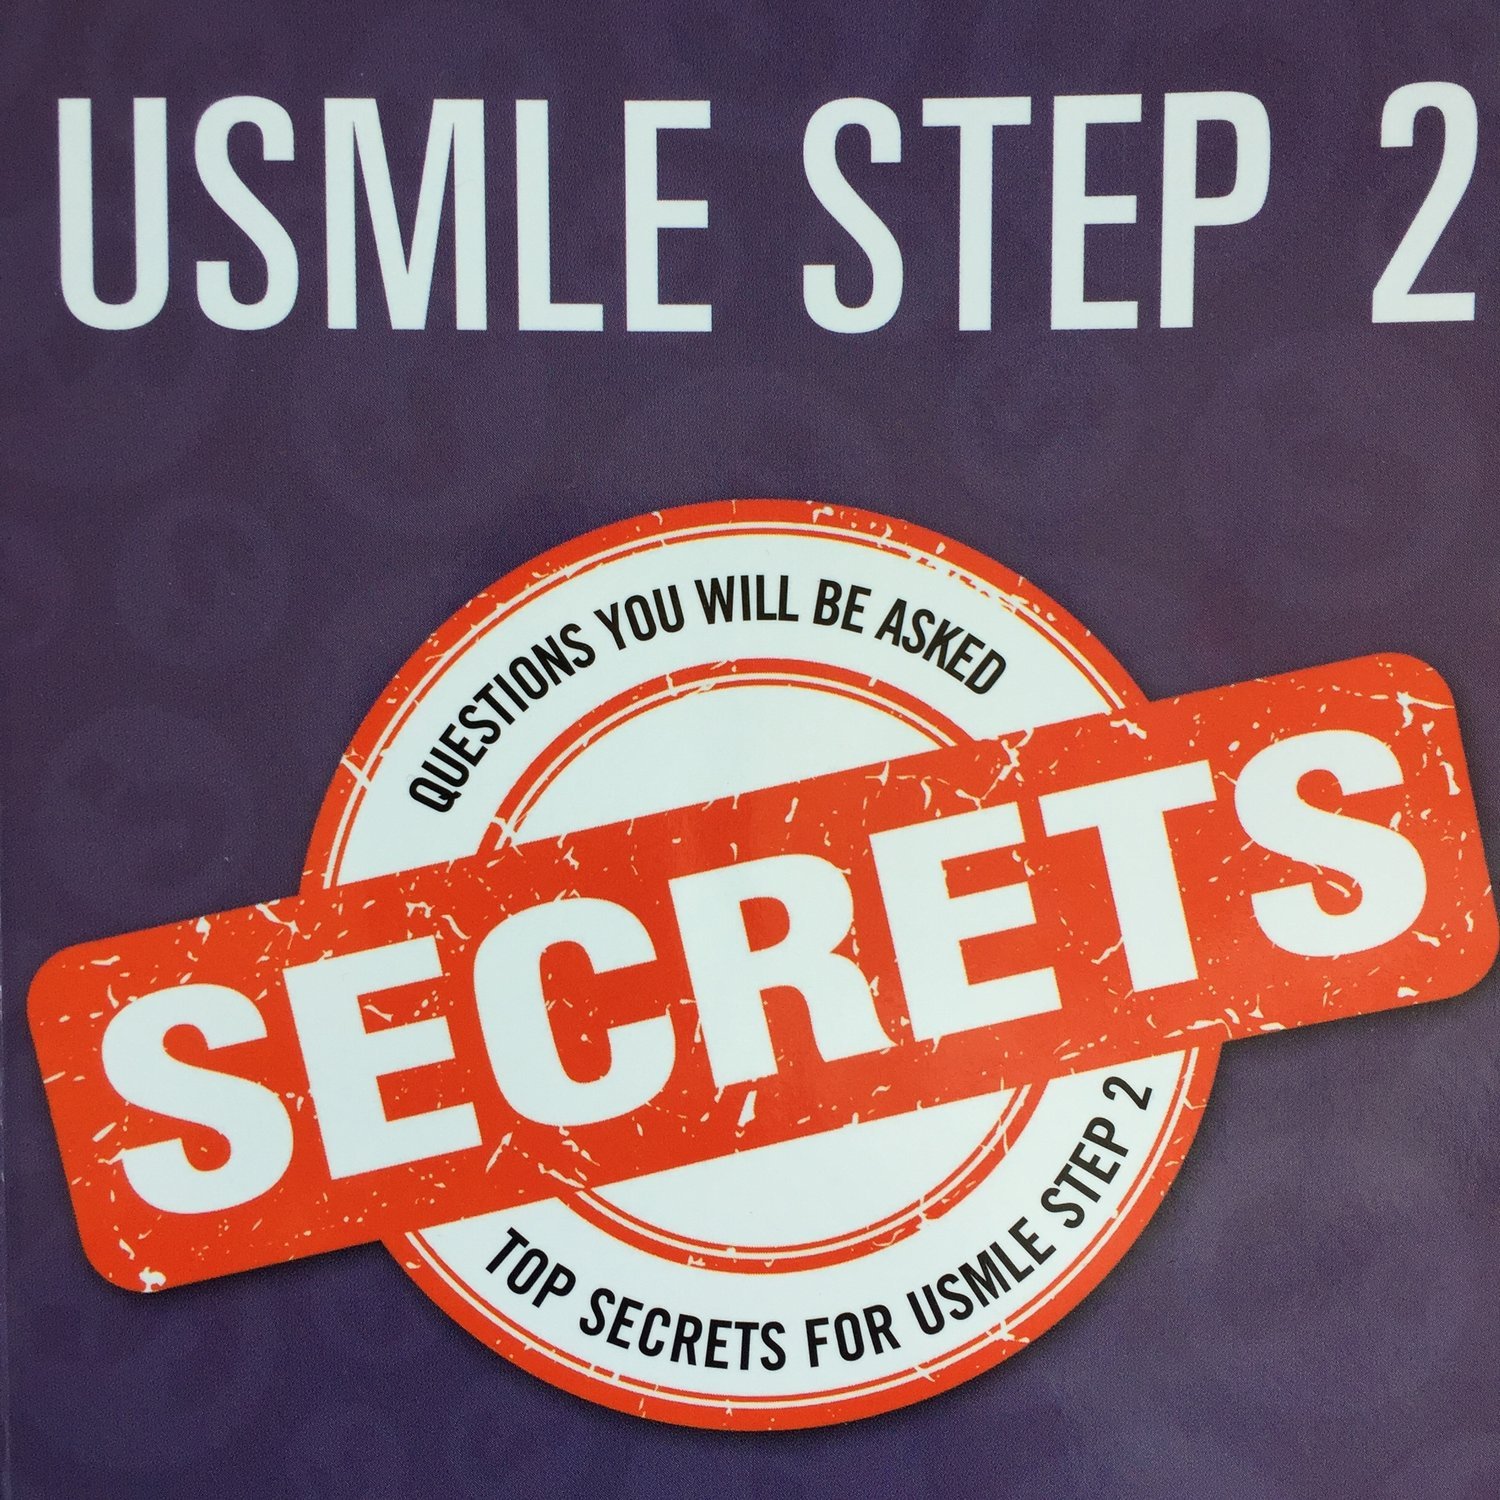 Best Episodes of USMLE Step 2 Secrets Podcast